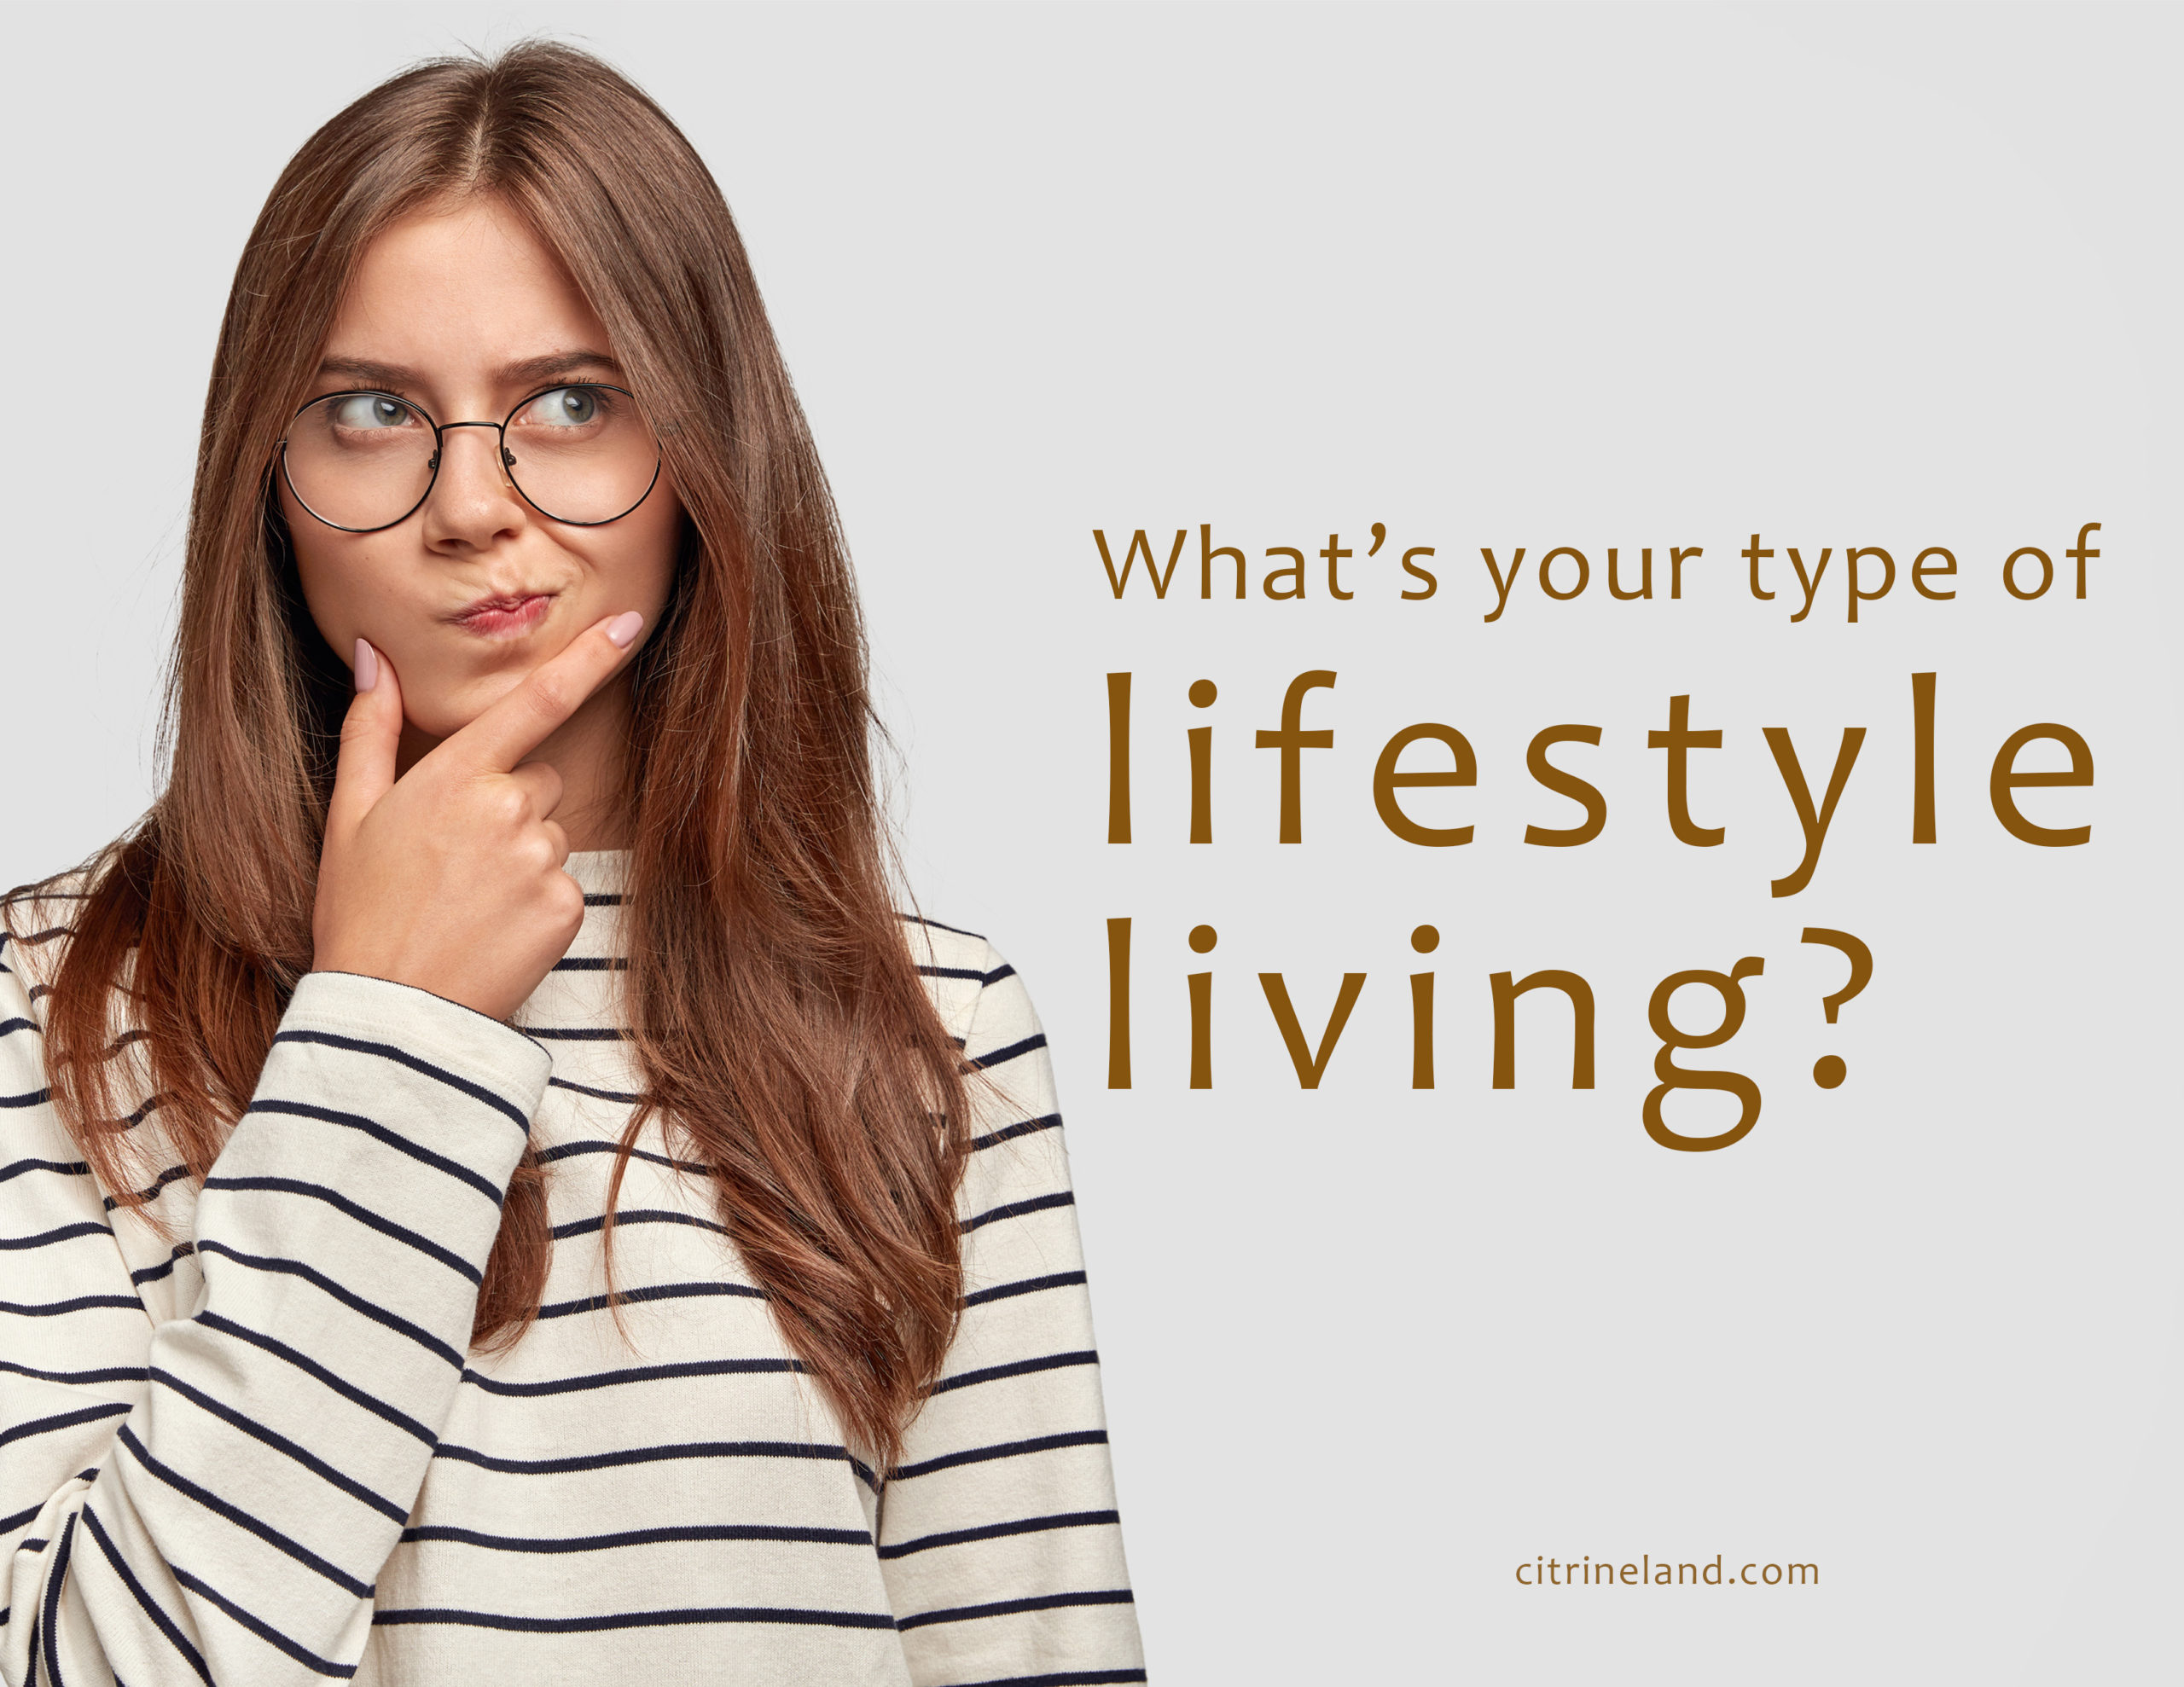 City Life Vs. Serene Life: Which Type of Lifestyle Fits You Best?